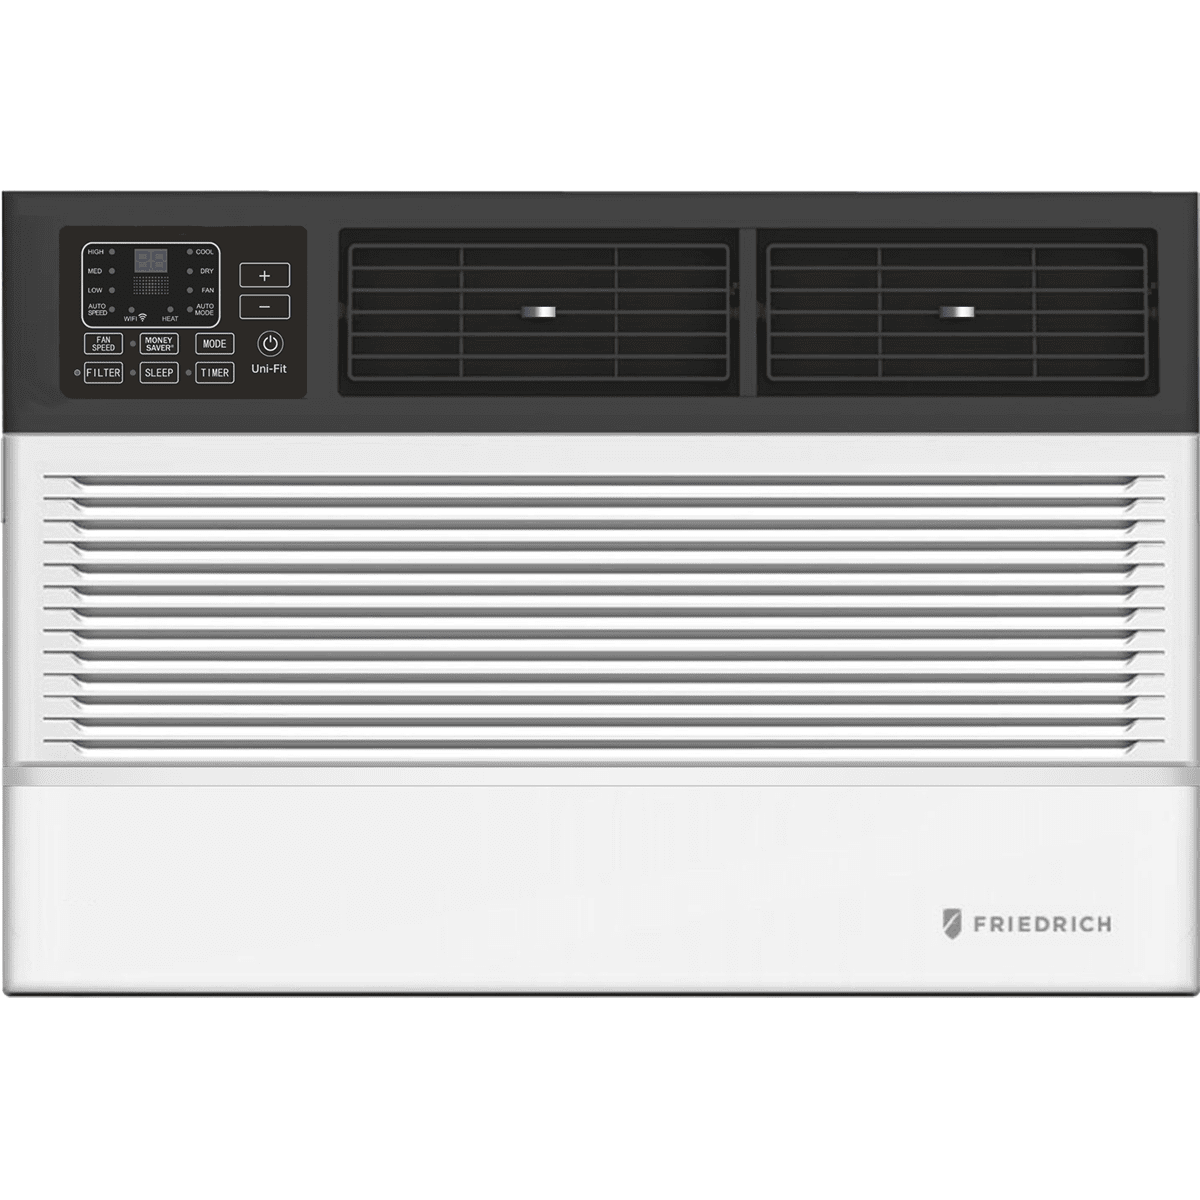 Friedrich Uni-Fit 8,000 BTU Thru-the-Wall AC